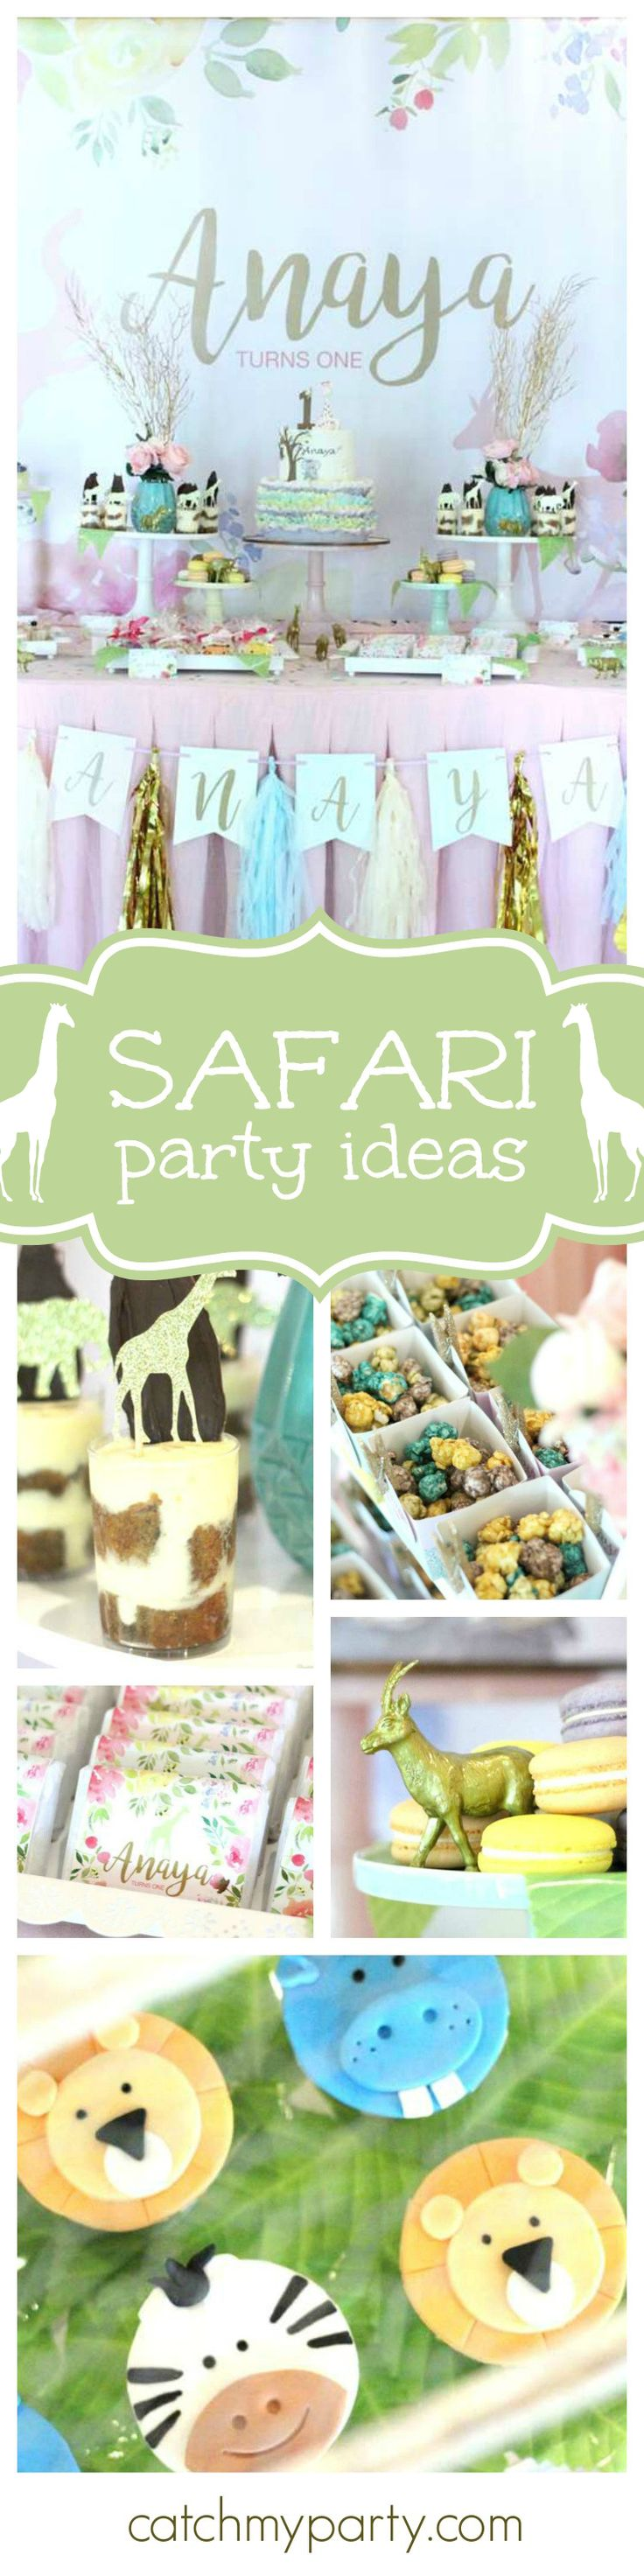 decor bunting soiree the style diy safari free first party source printables our jungle to birthday welcome list is decorations this bliss